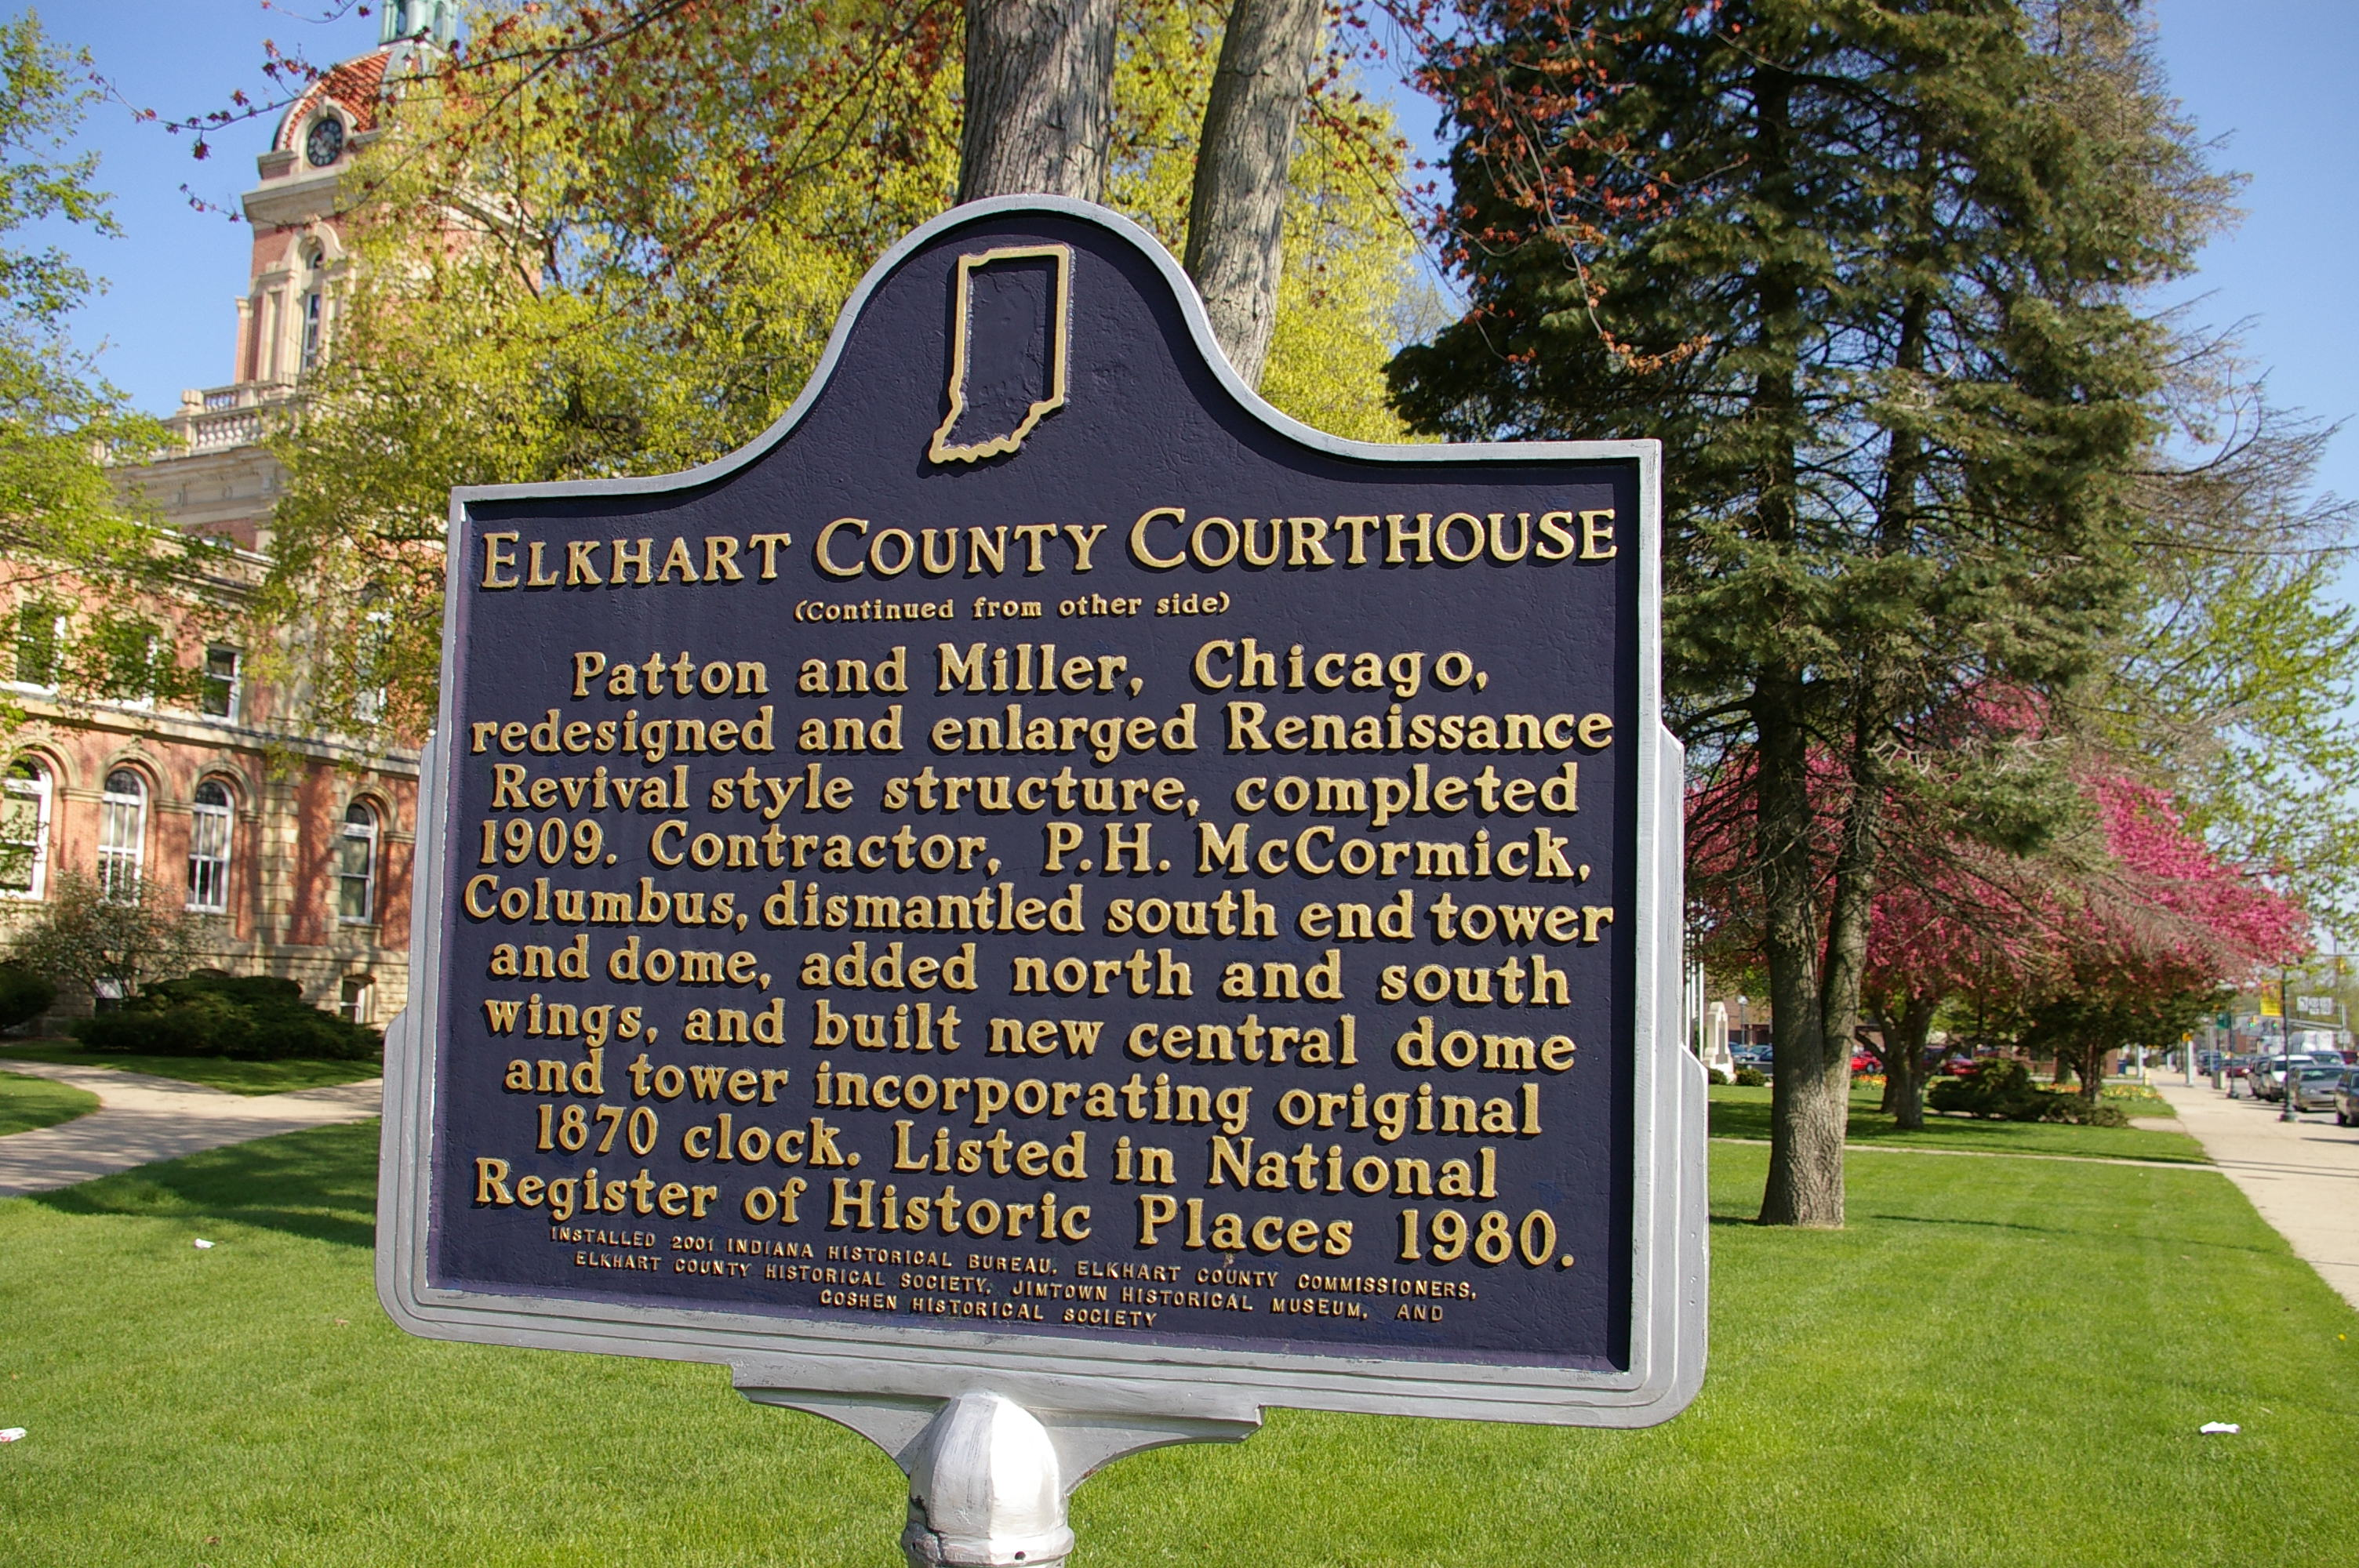 elkhart county Find elkhart county, indiana commercial real estate for sale on loopnetcom locate elkhart county land for sale, elkhart county retail space for lease, elkhart county multifamily apartments for sale, elkhart county office space and other commercial real estate news and resources.